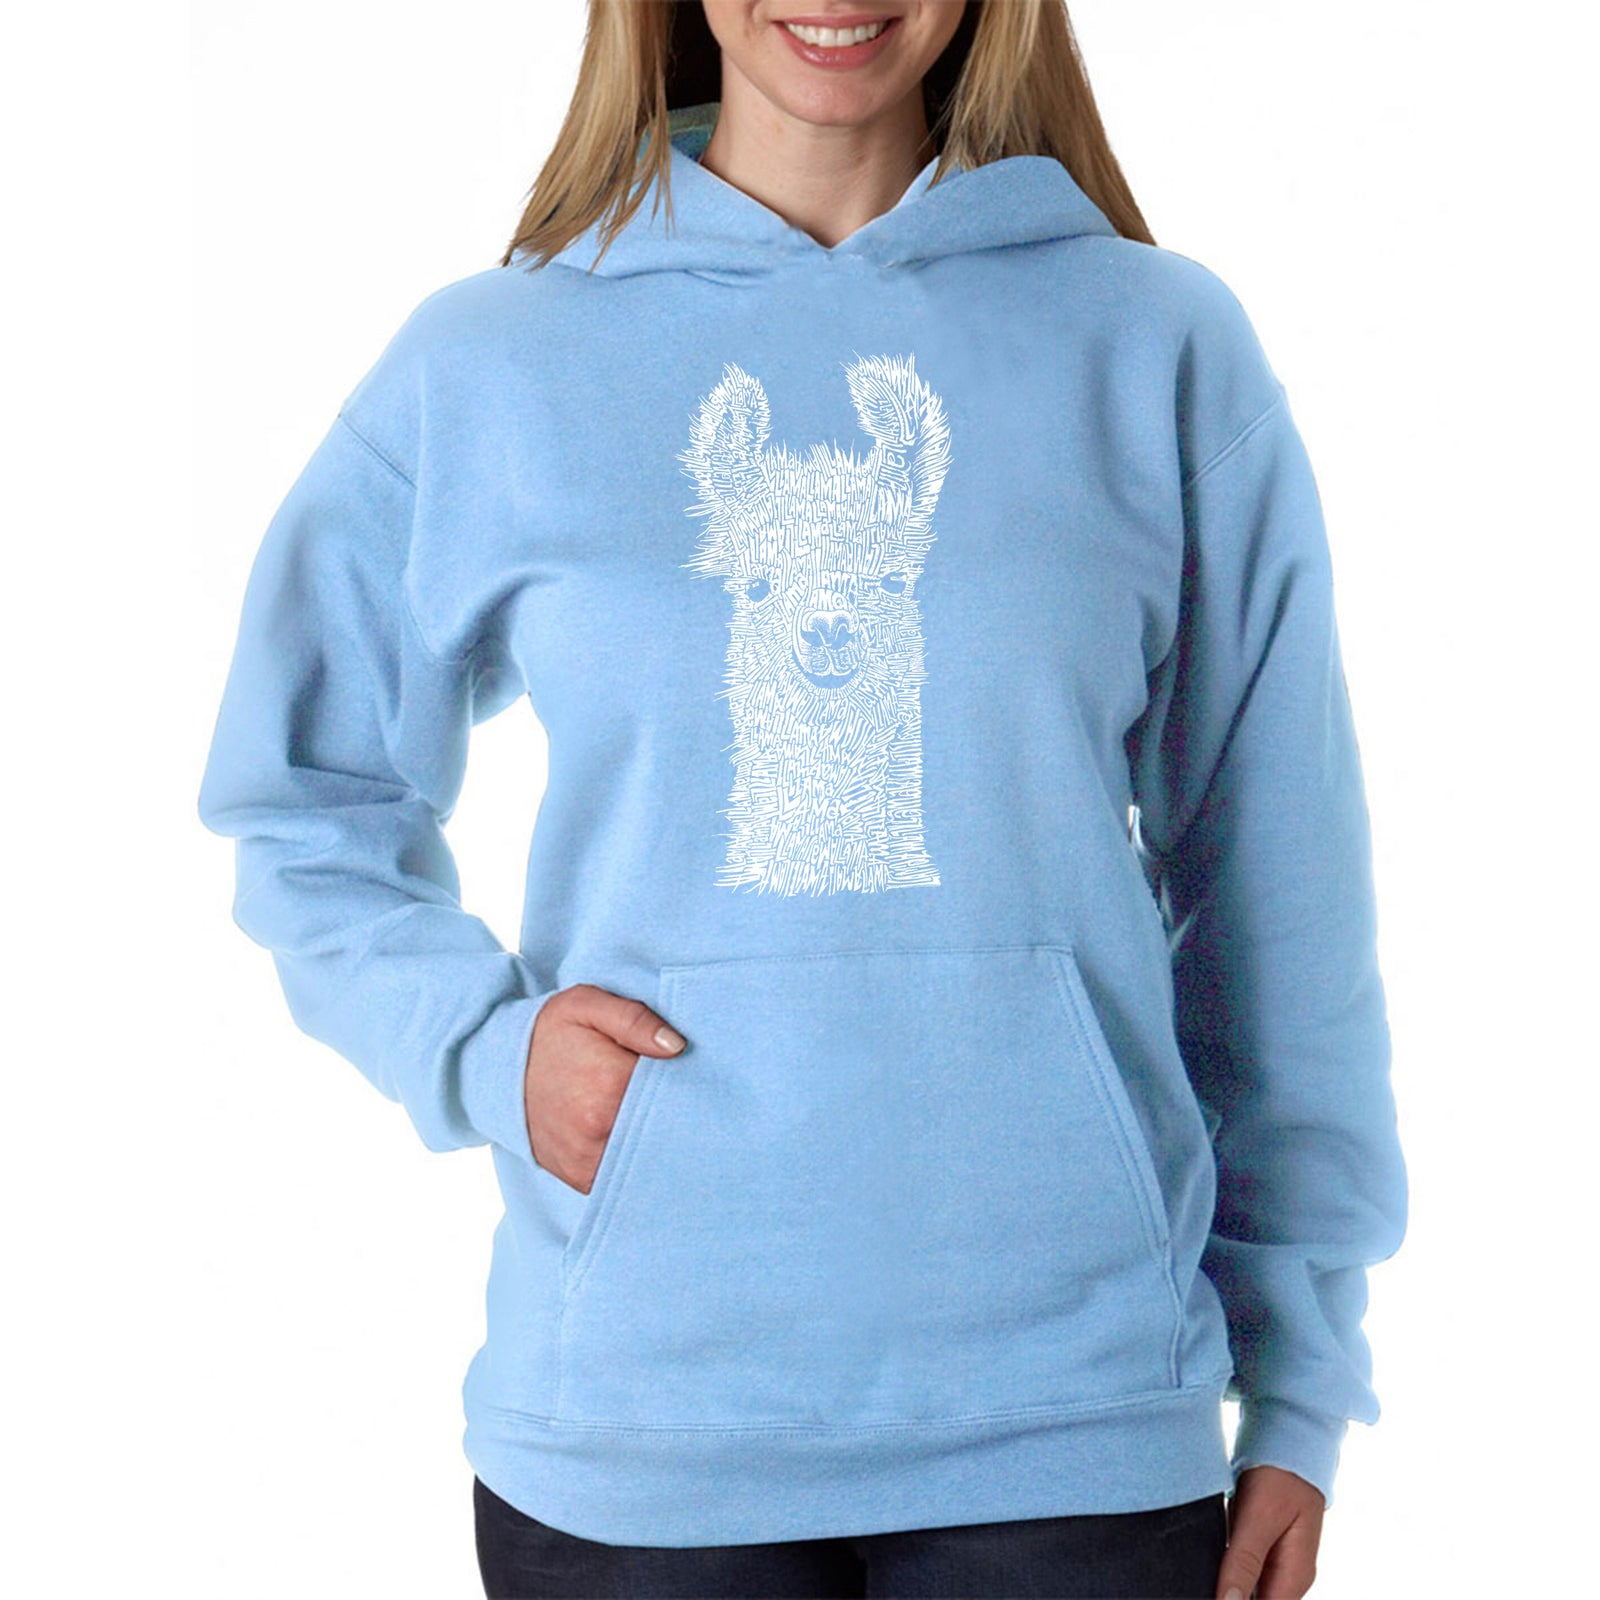 Women's Word Art Hooded Sweatshirt -Llama